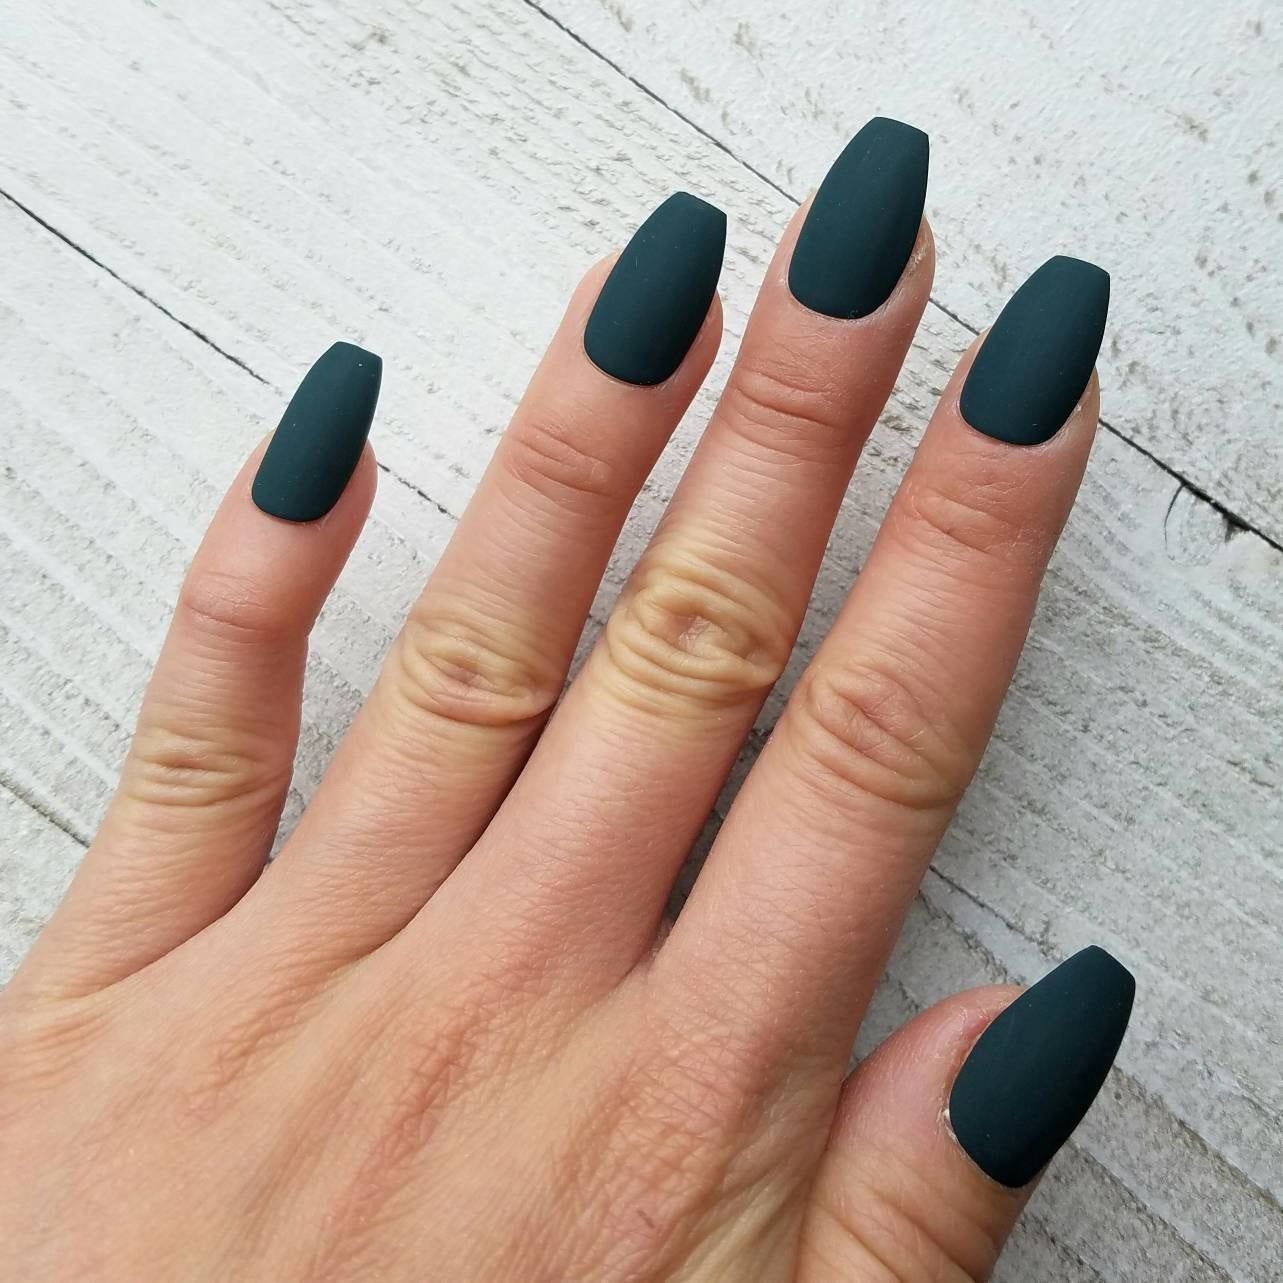 Deep Teal Green nails fake nails press on nails. Green | Etsy